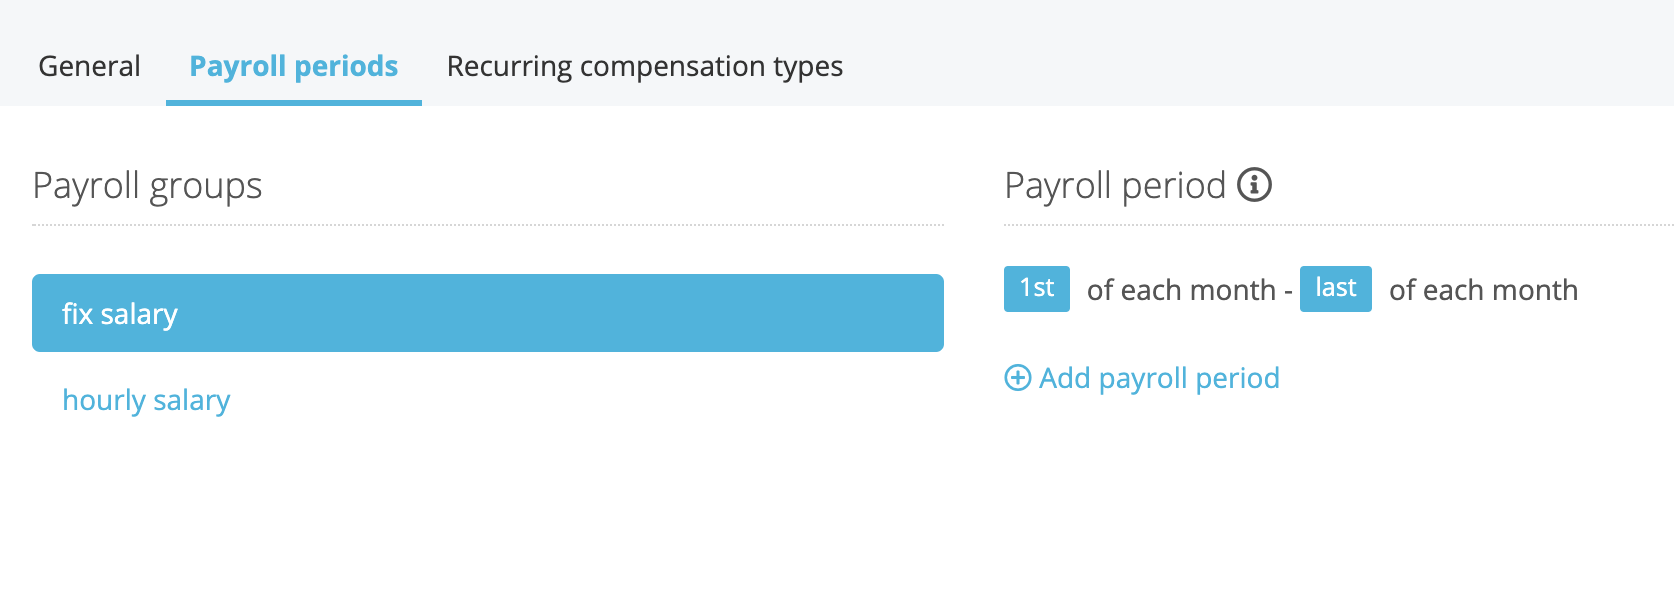 preliminary-payroll-payroll-group_de.png